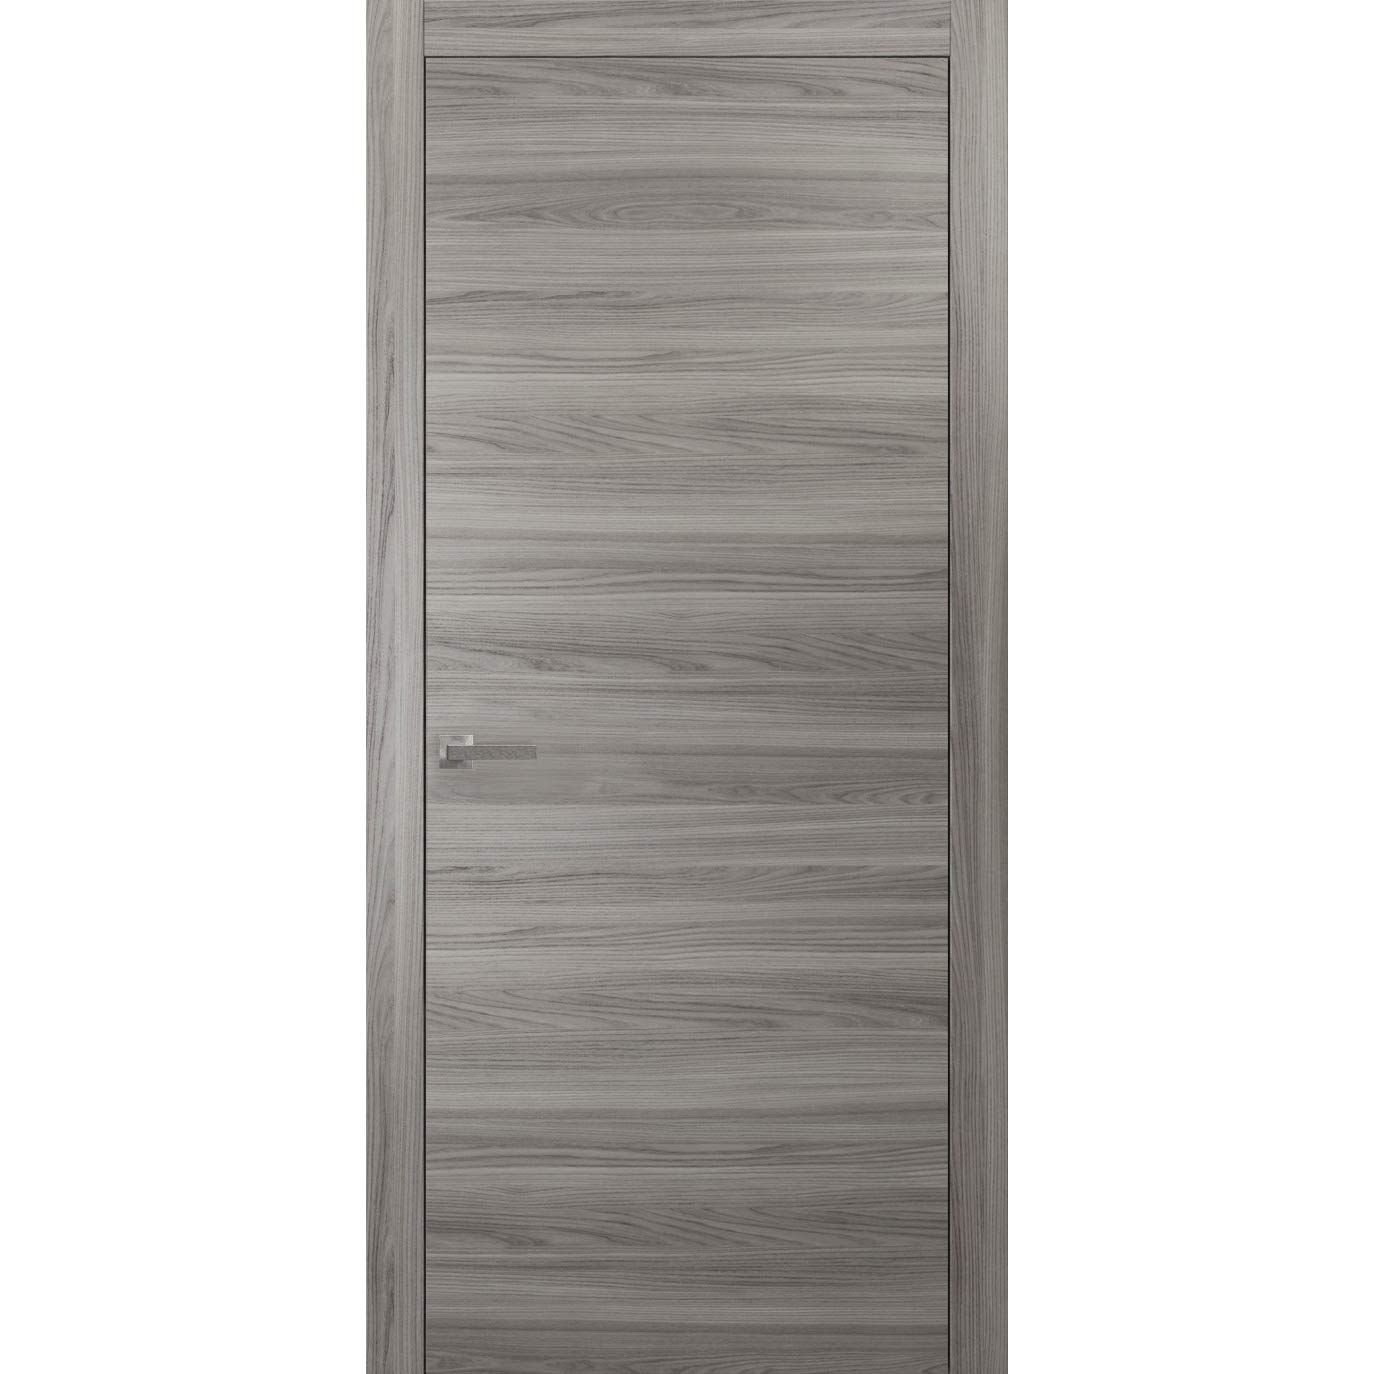 Wood Solid Door 32 x 84 inches   Planum 0010 Ginger Ash   Frame Trims Lever Hardware   Interior Modern Flush Pre-hung Grey Doors